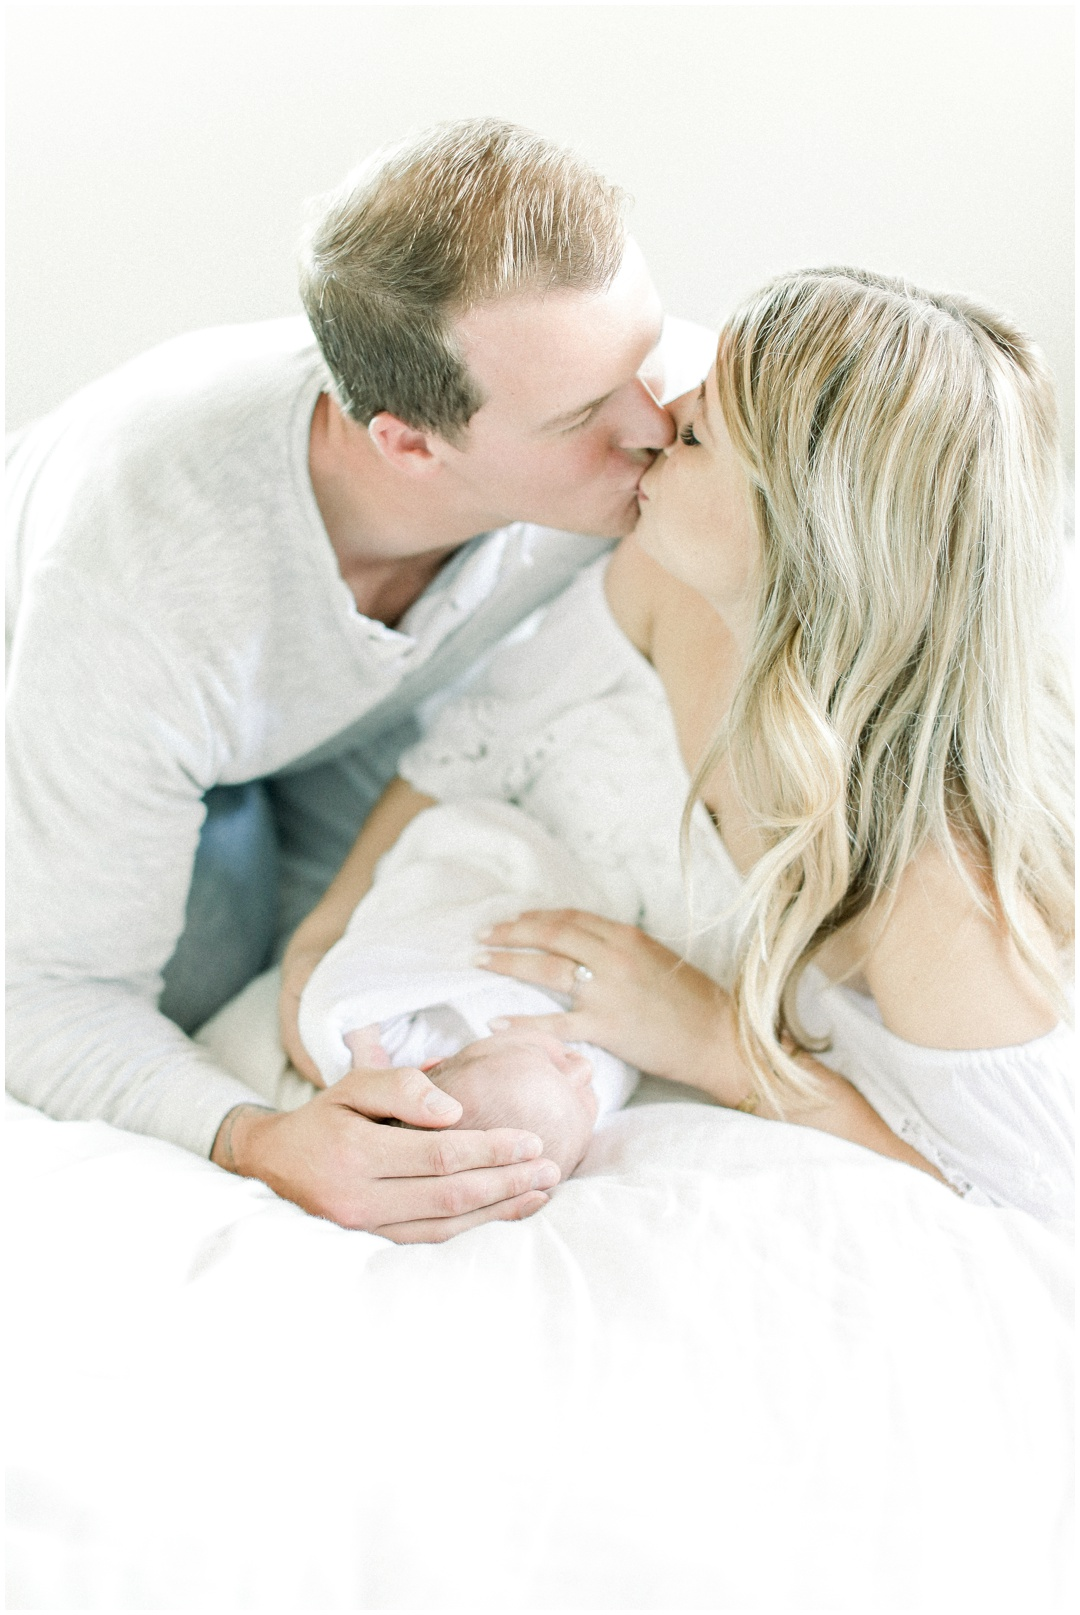 Newport_Beach_Newborn_Light_Airy_Natural_Photographer_Newport_Beach_Photographer_Orange_County_Family_Photographer_Cori_Kleckner_Photography_Huntington_Beach_Photographer_Family_OC_Newborn_Megan_Bradley_Schueneman_Charlie_Schueneman_Dean__3597.jpg